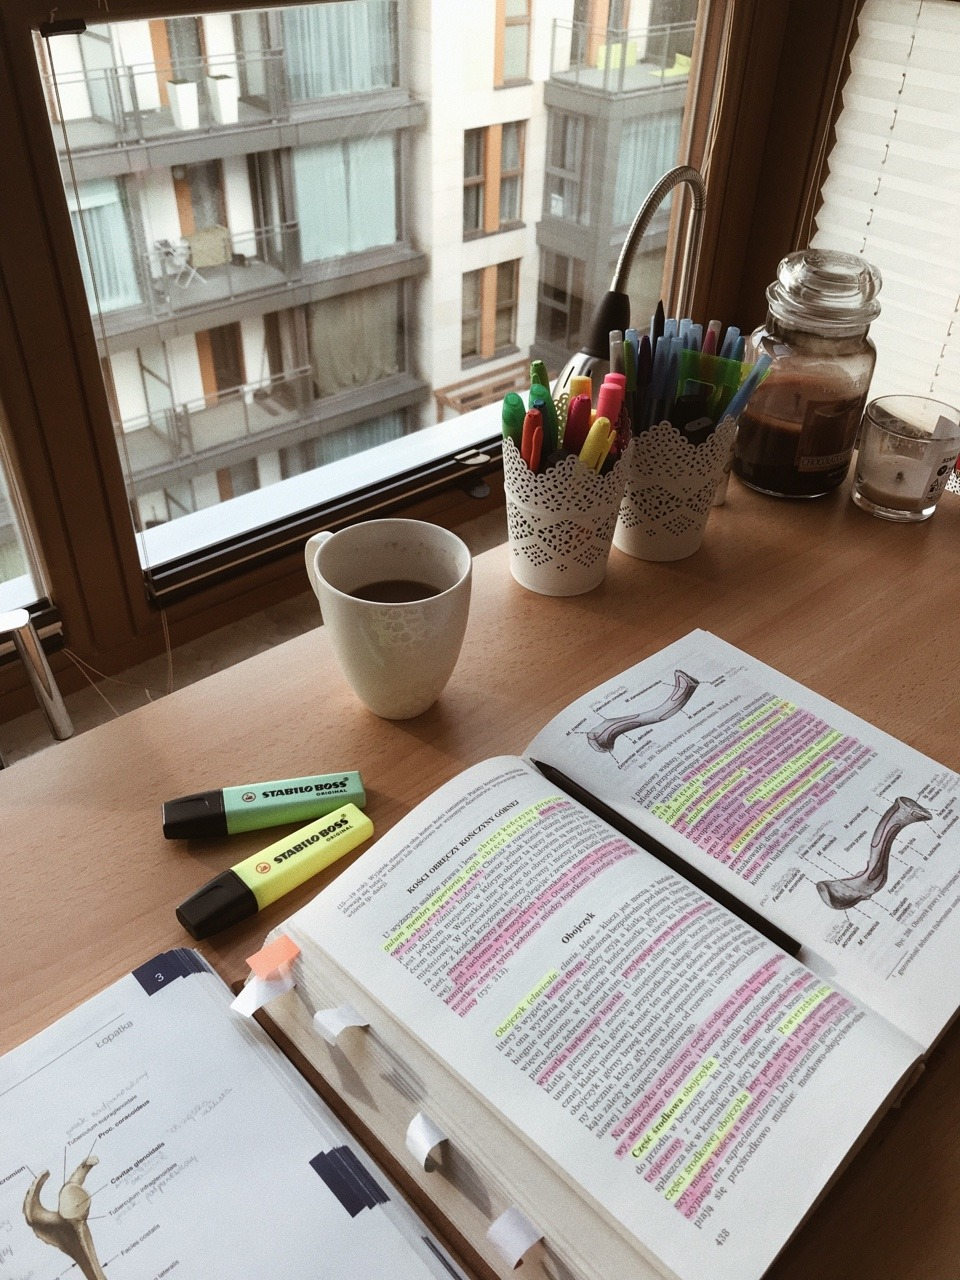 cozy rooms, stationary, studying motivation and study desk